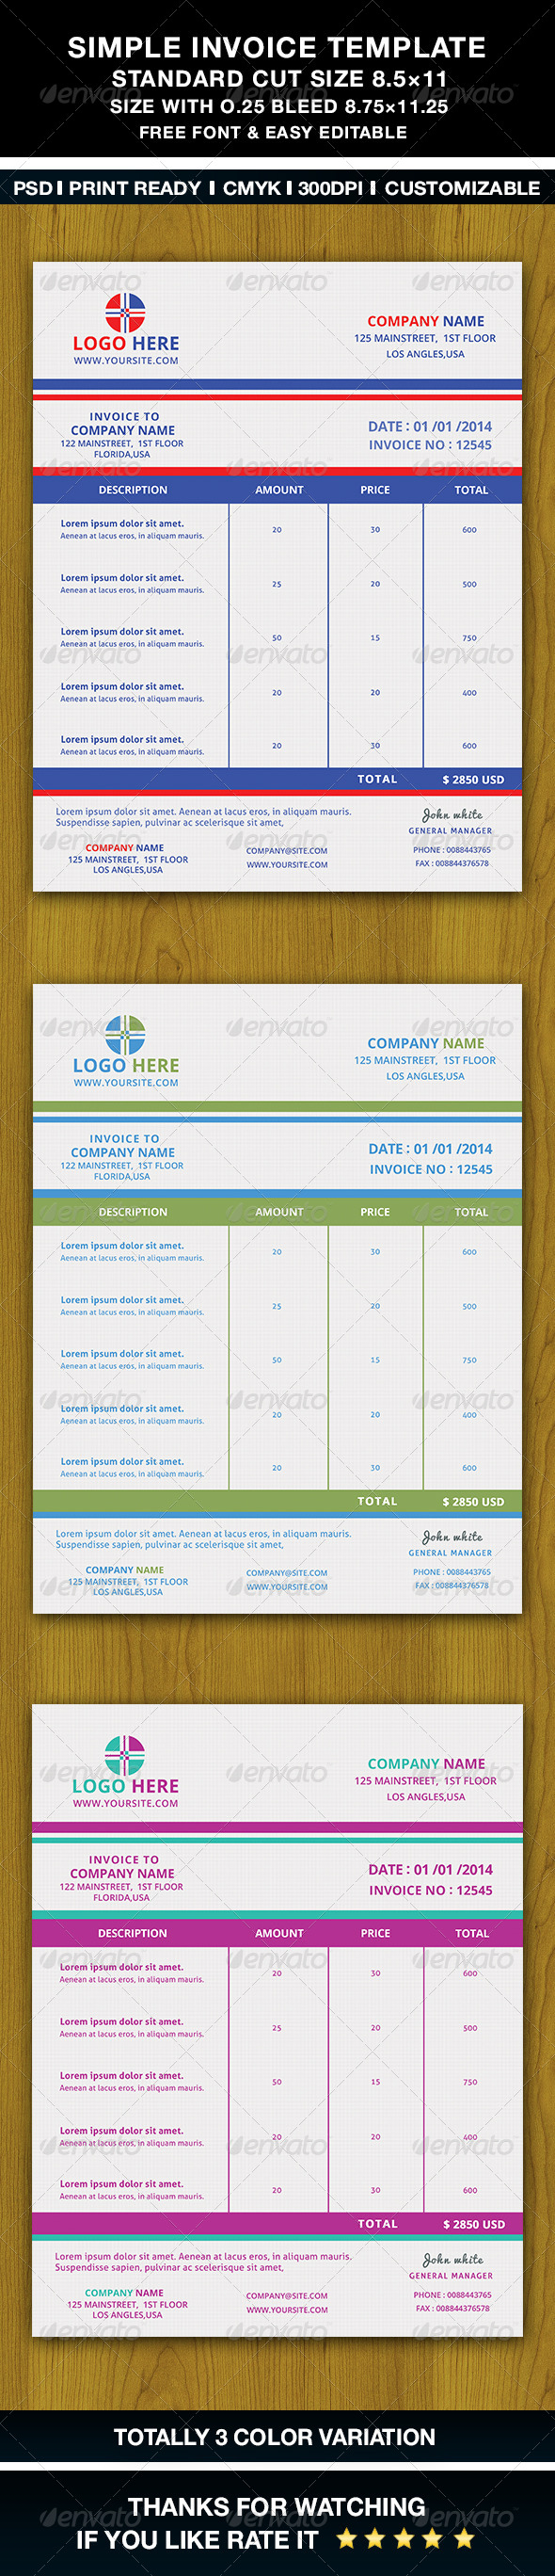 GraphicRiver Simple Invoice Template 6511133